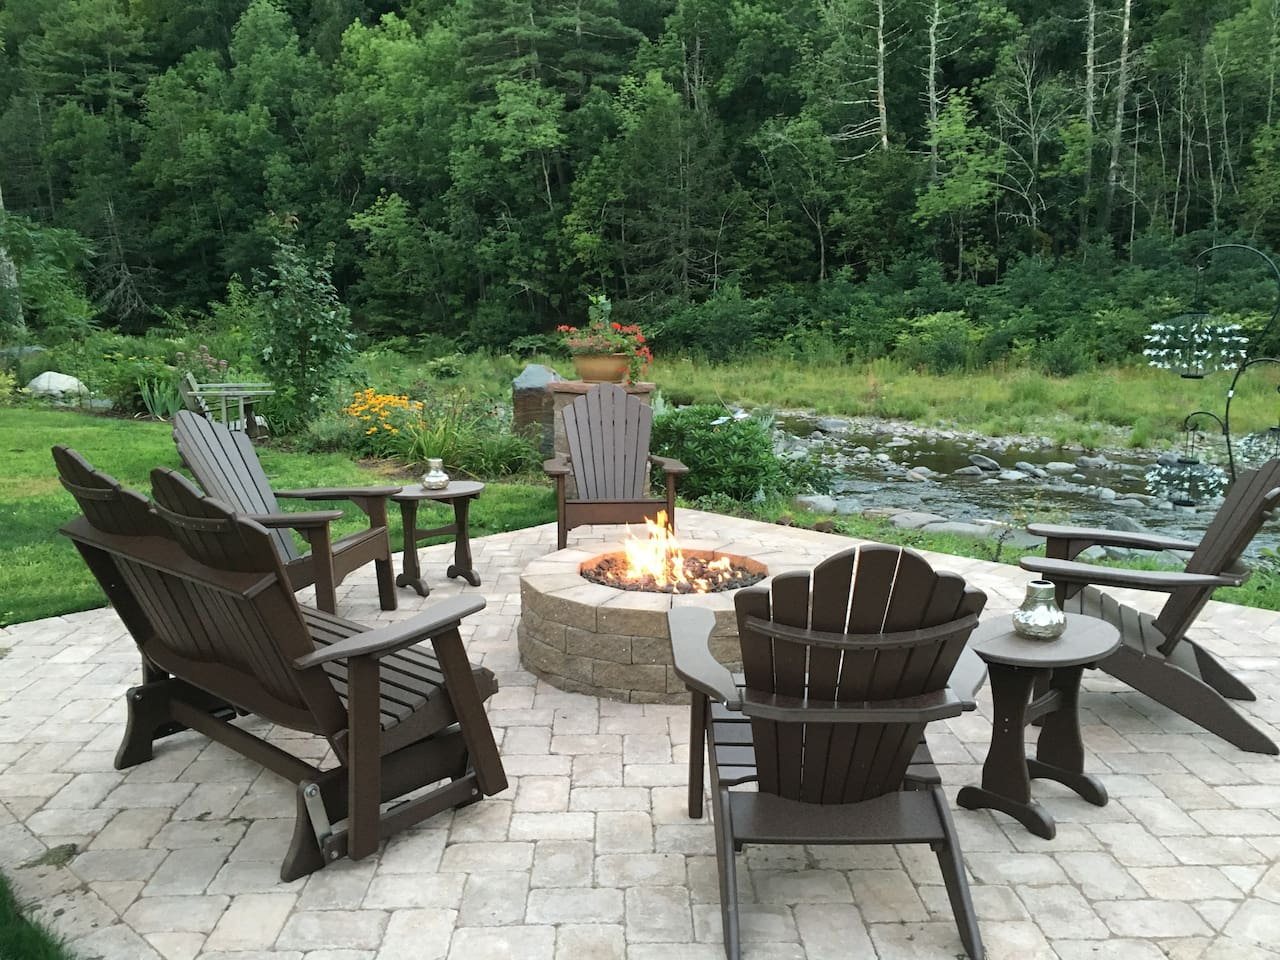 enjoy our beautiful, new, stream side patio with comfortable furniture & terrific seasonal fire pit